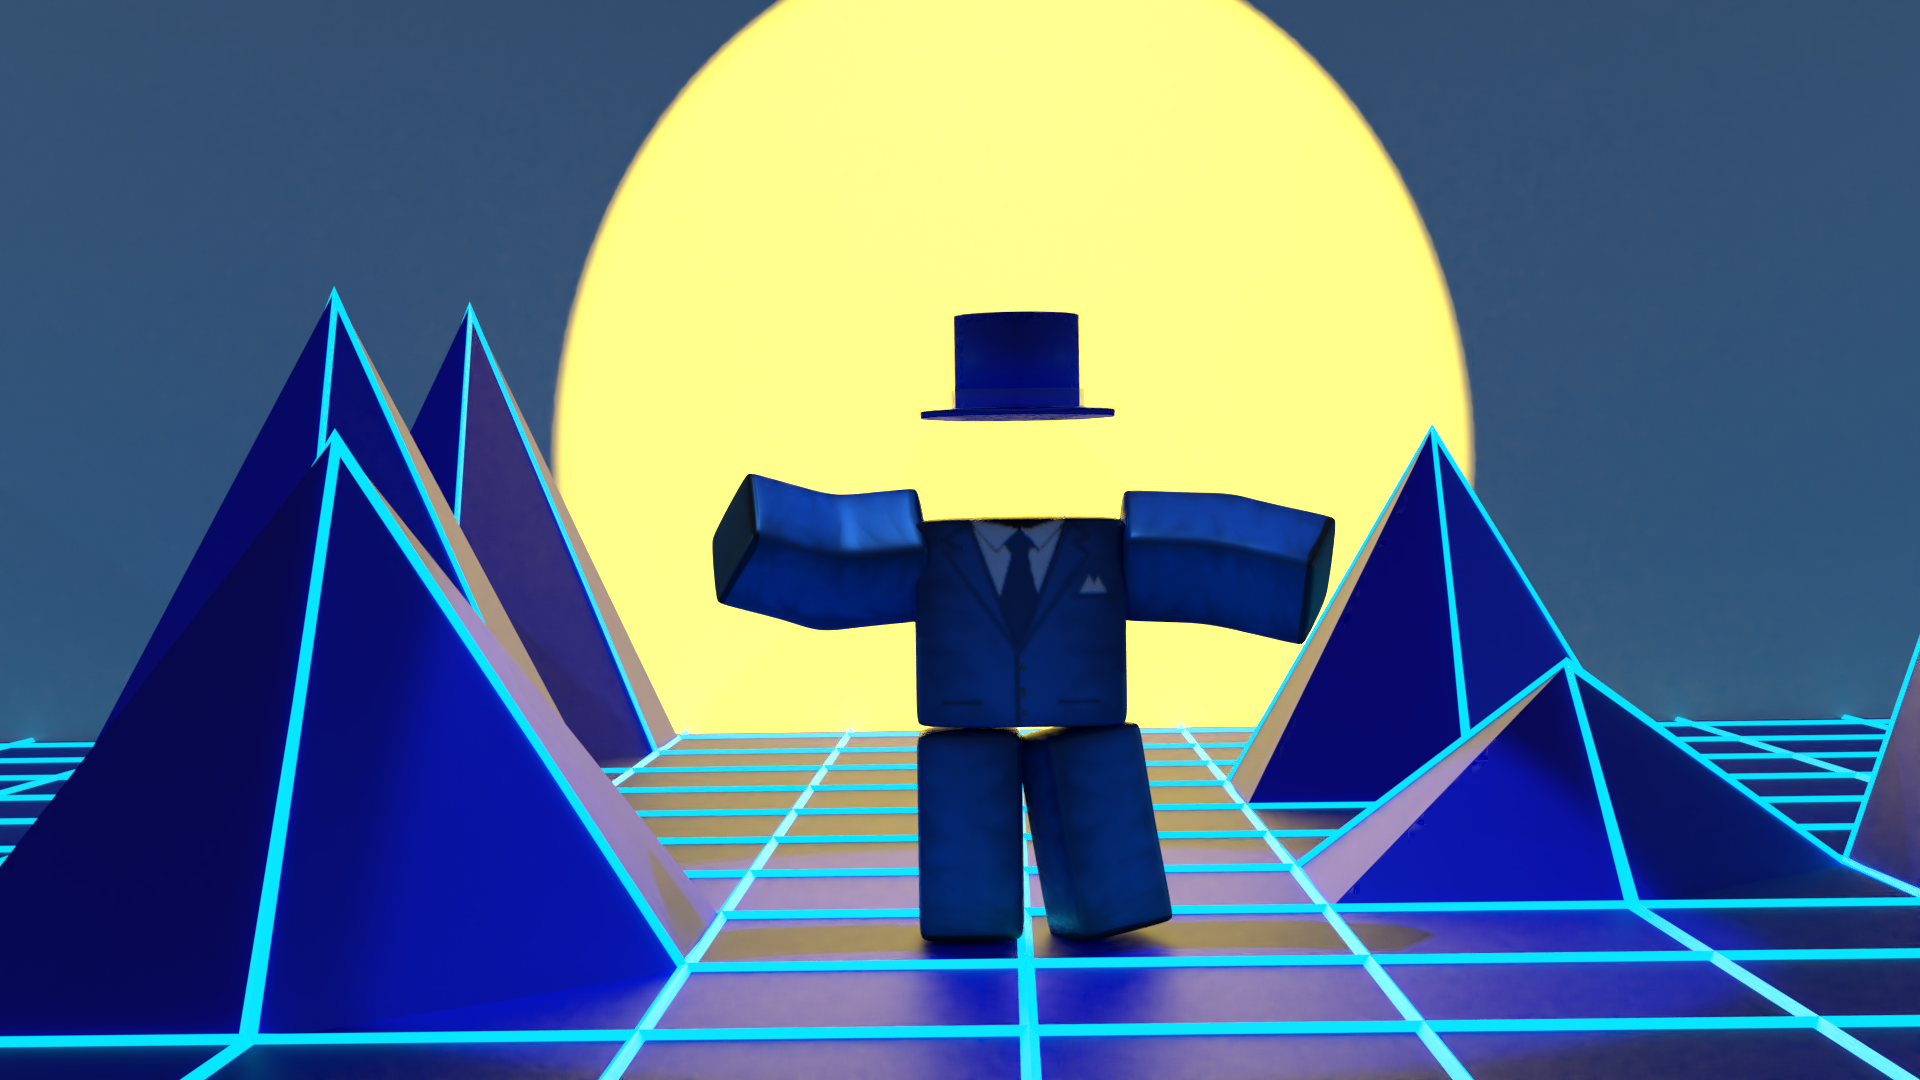 Cool Background For Roblox